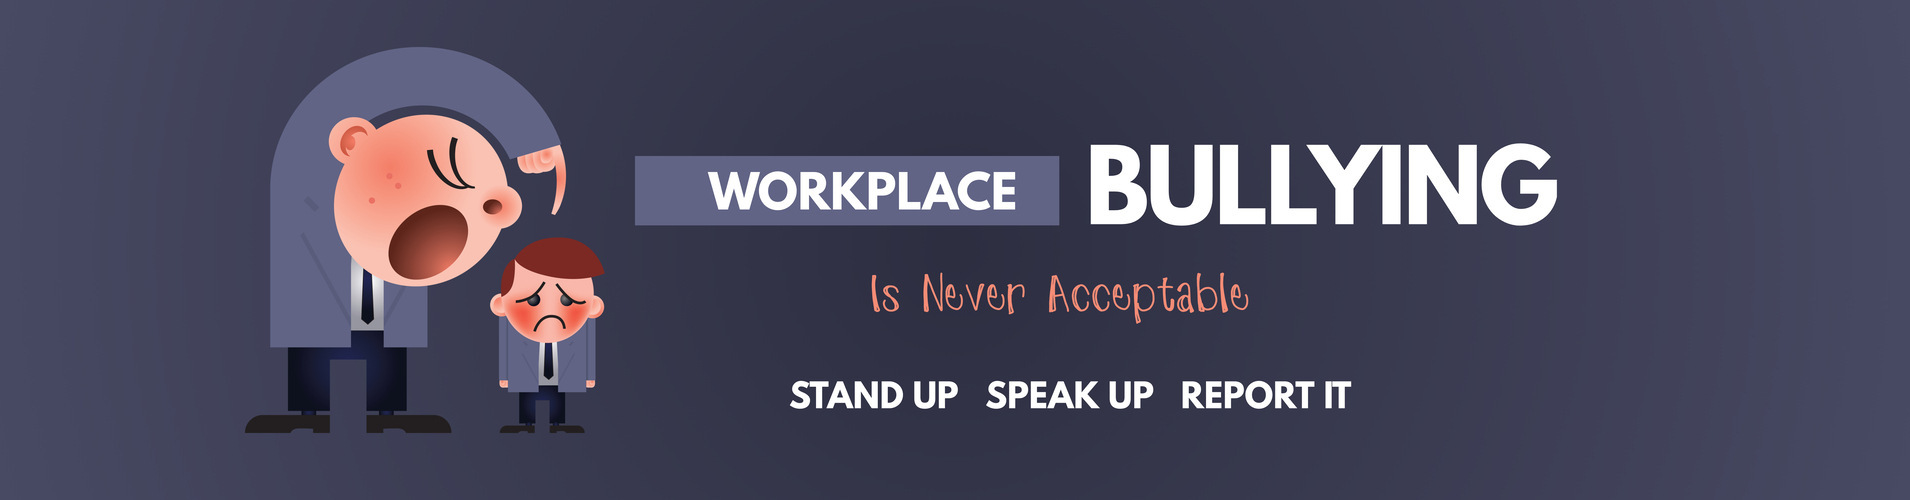 workplace bullying india